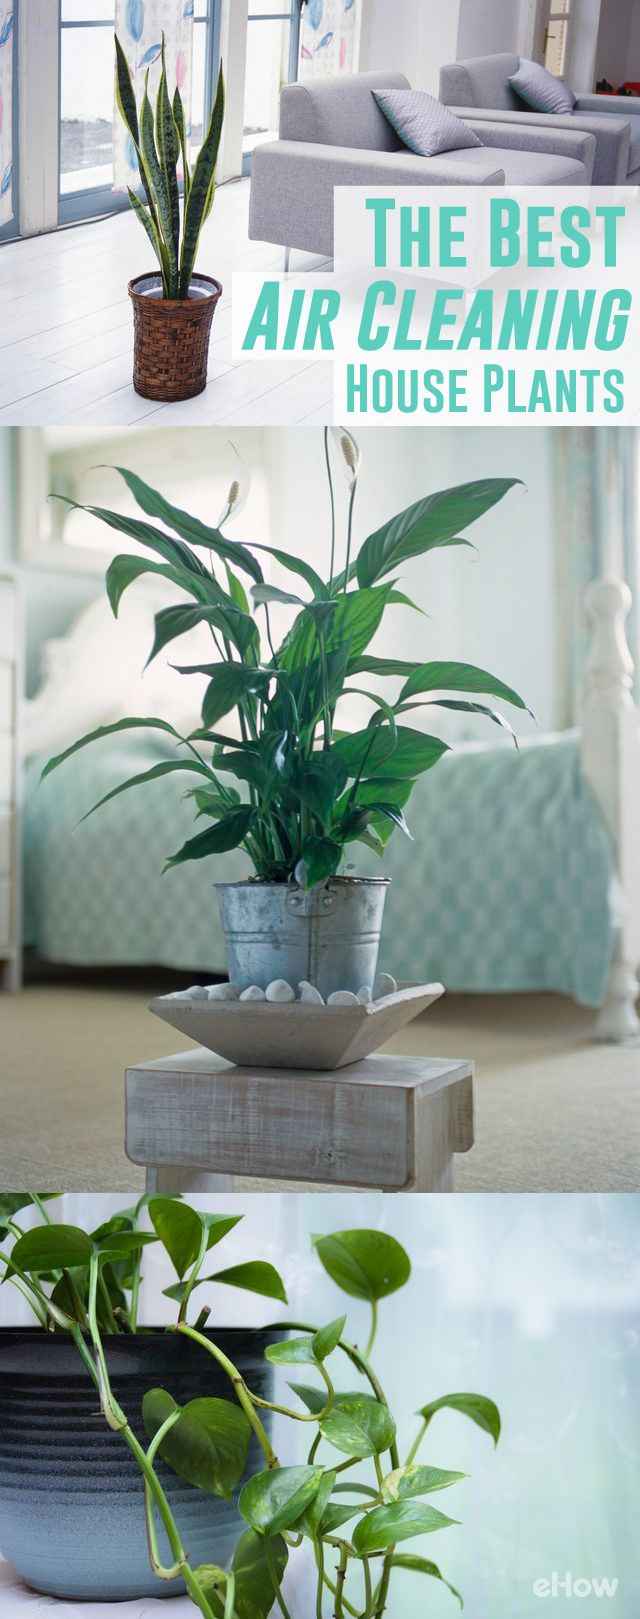 All plants remove carbon dioxide from their environment and release oxygen as part of the natural processes involved with photosynthesis. National Aeronautics and Space Administration (NASA) research shows that many common houseplants are very efficient at removing other problem pollutants from indoor air. http://www.ehow.com/info_8066723_house-plant-cleaning-air.html?utm_source=pinterest.com&utm_medium=referral&utm_content=freestyle&utm_campaign=fanpage